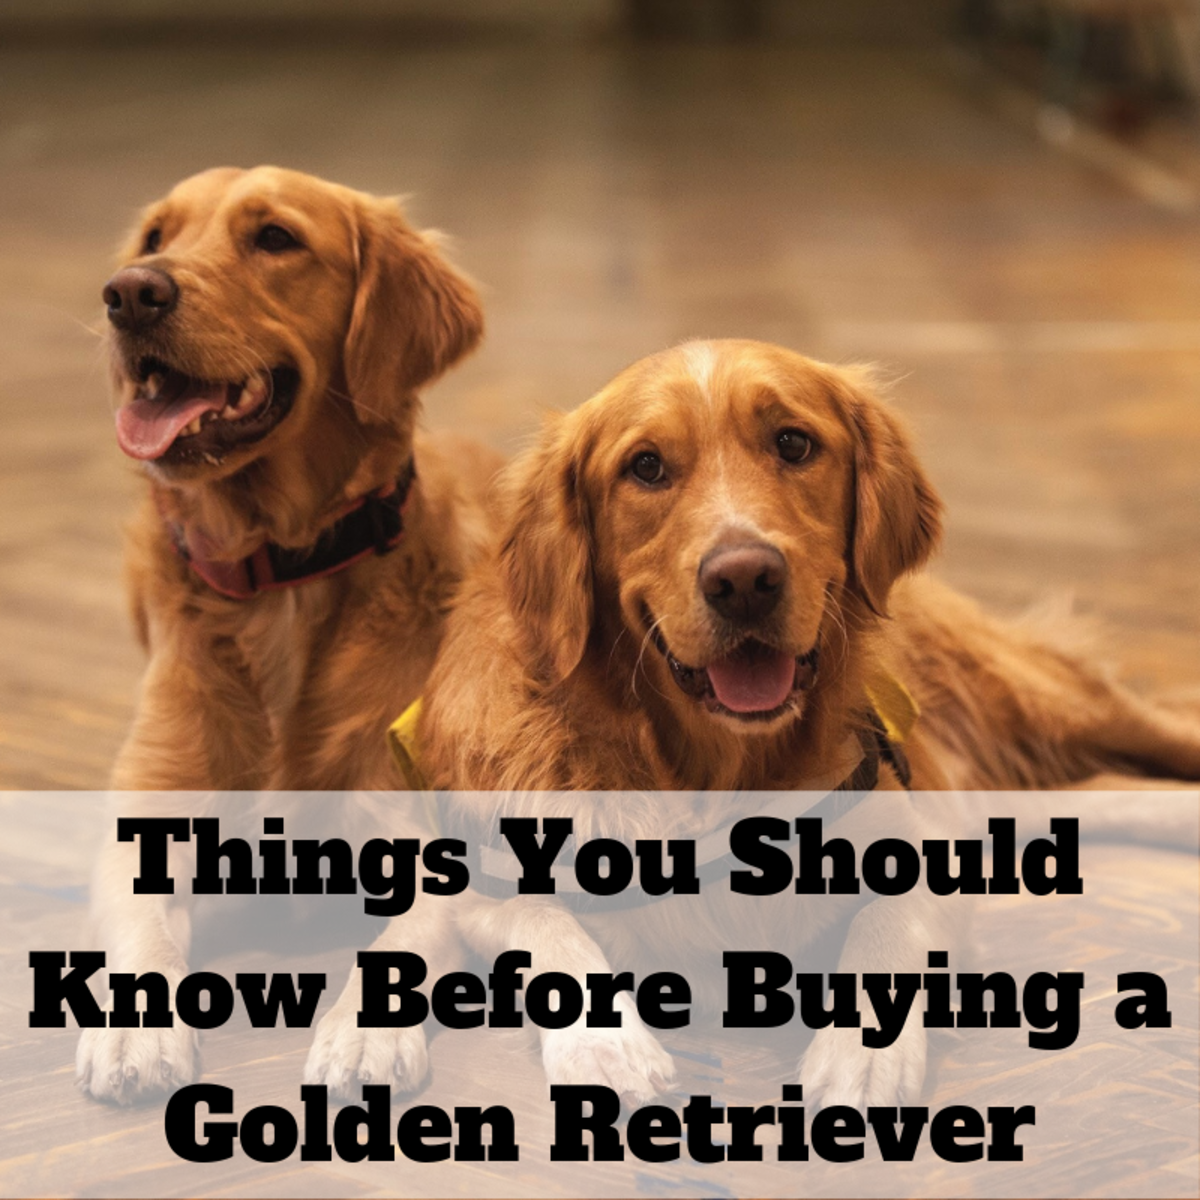 13 Things to Consider Before Buying a Golden Retriever